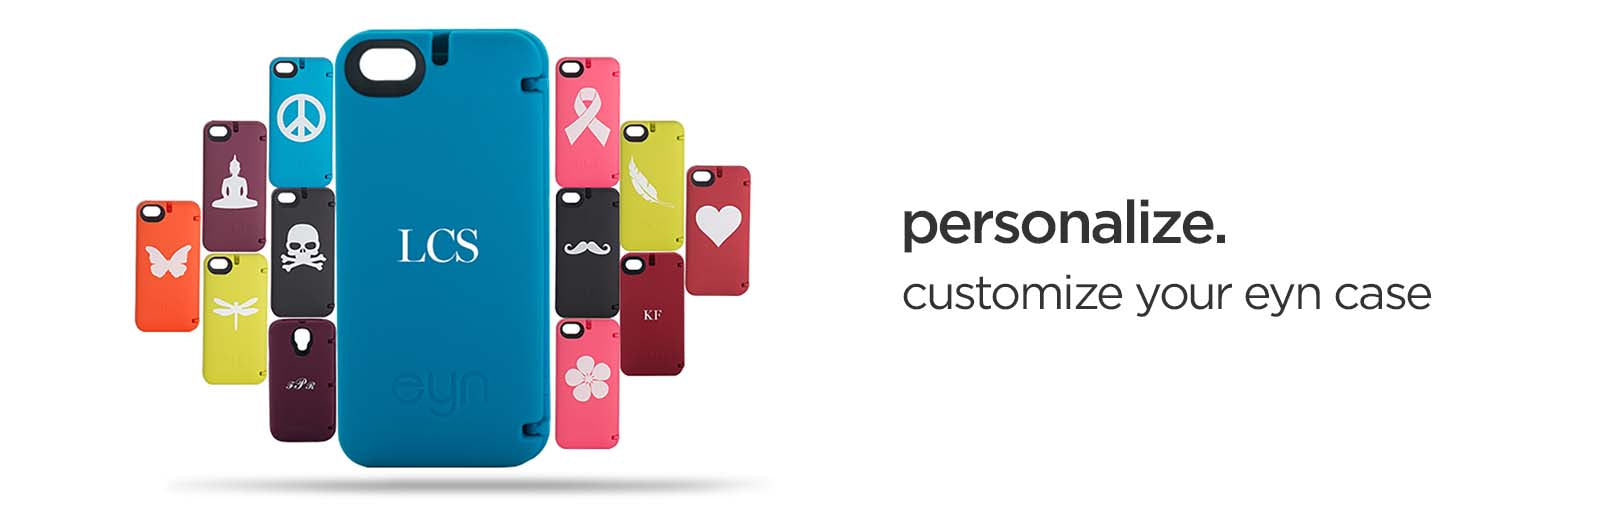 personalize. customize your EYN case